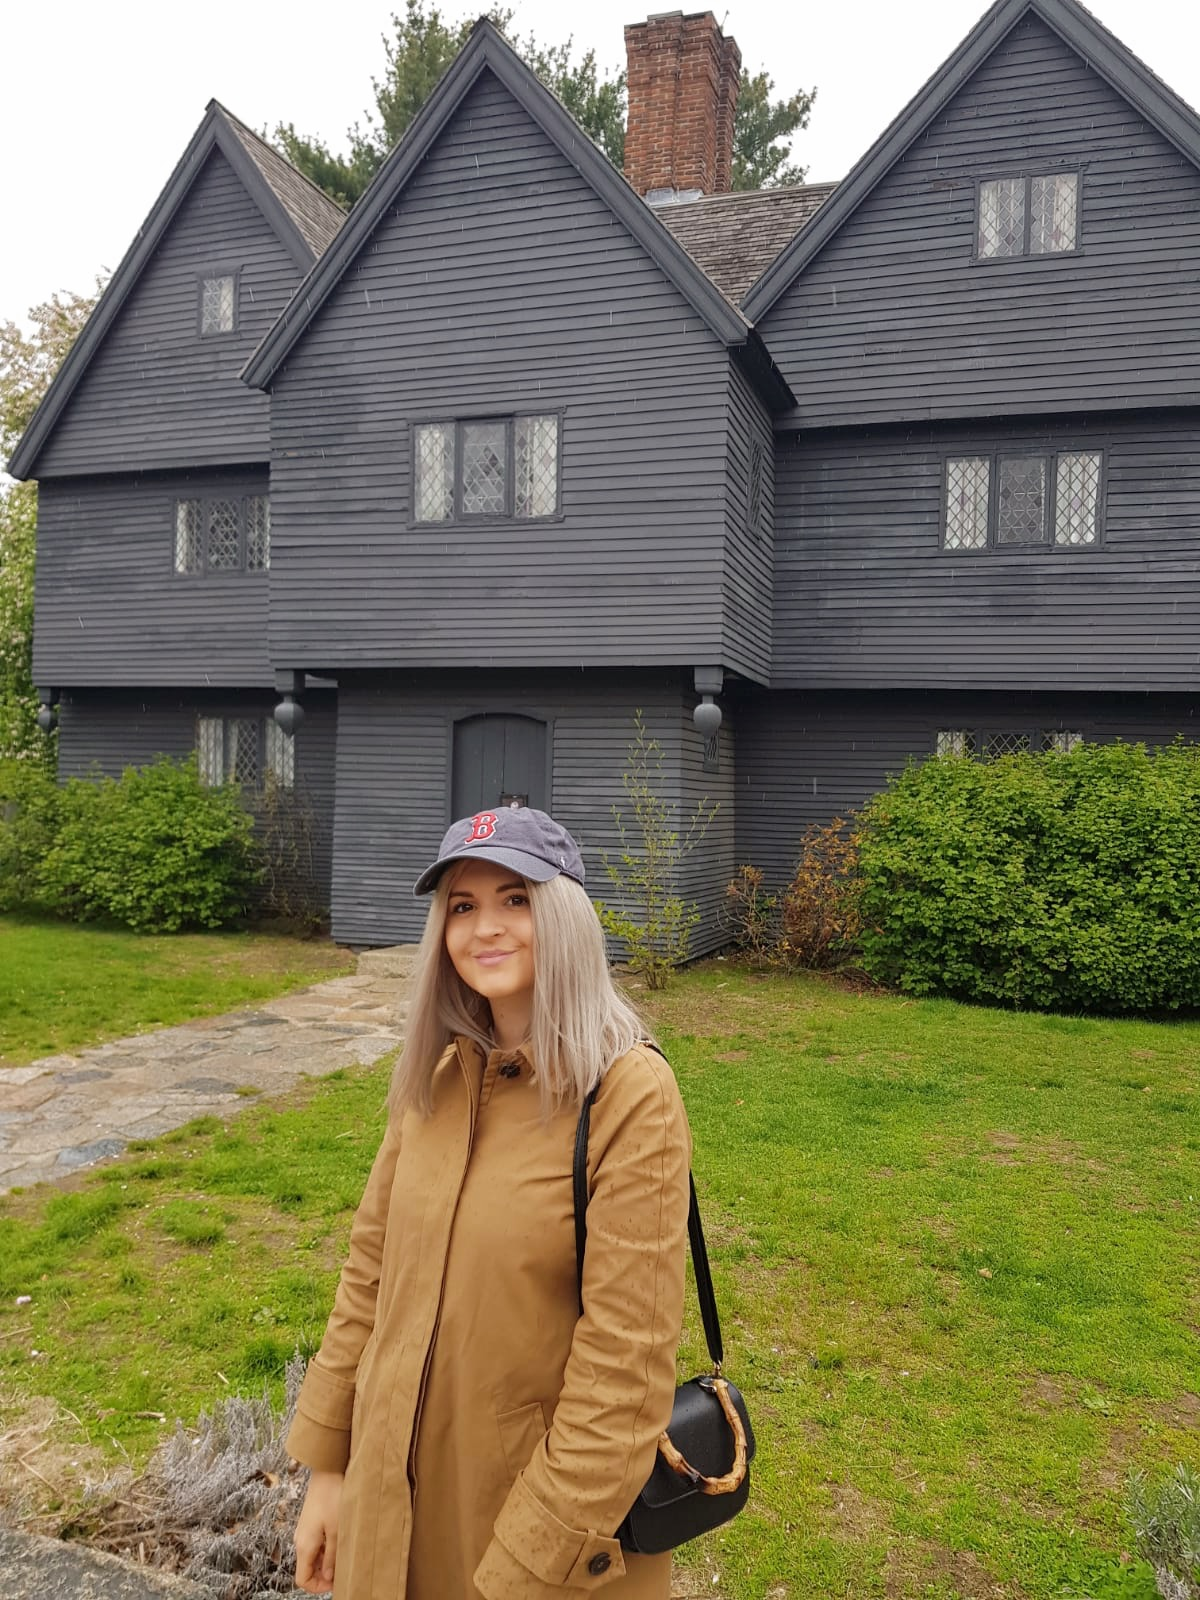 visiting the Salem witch house